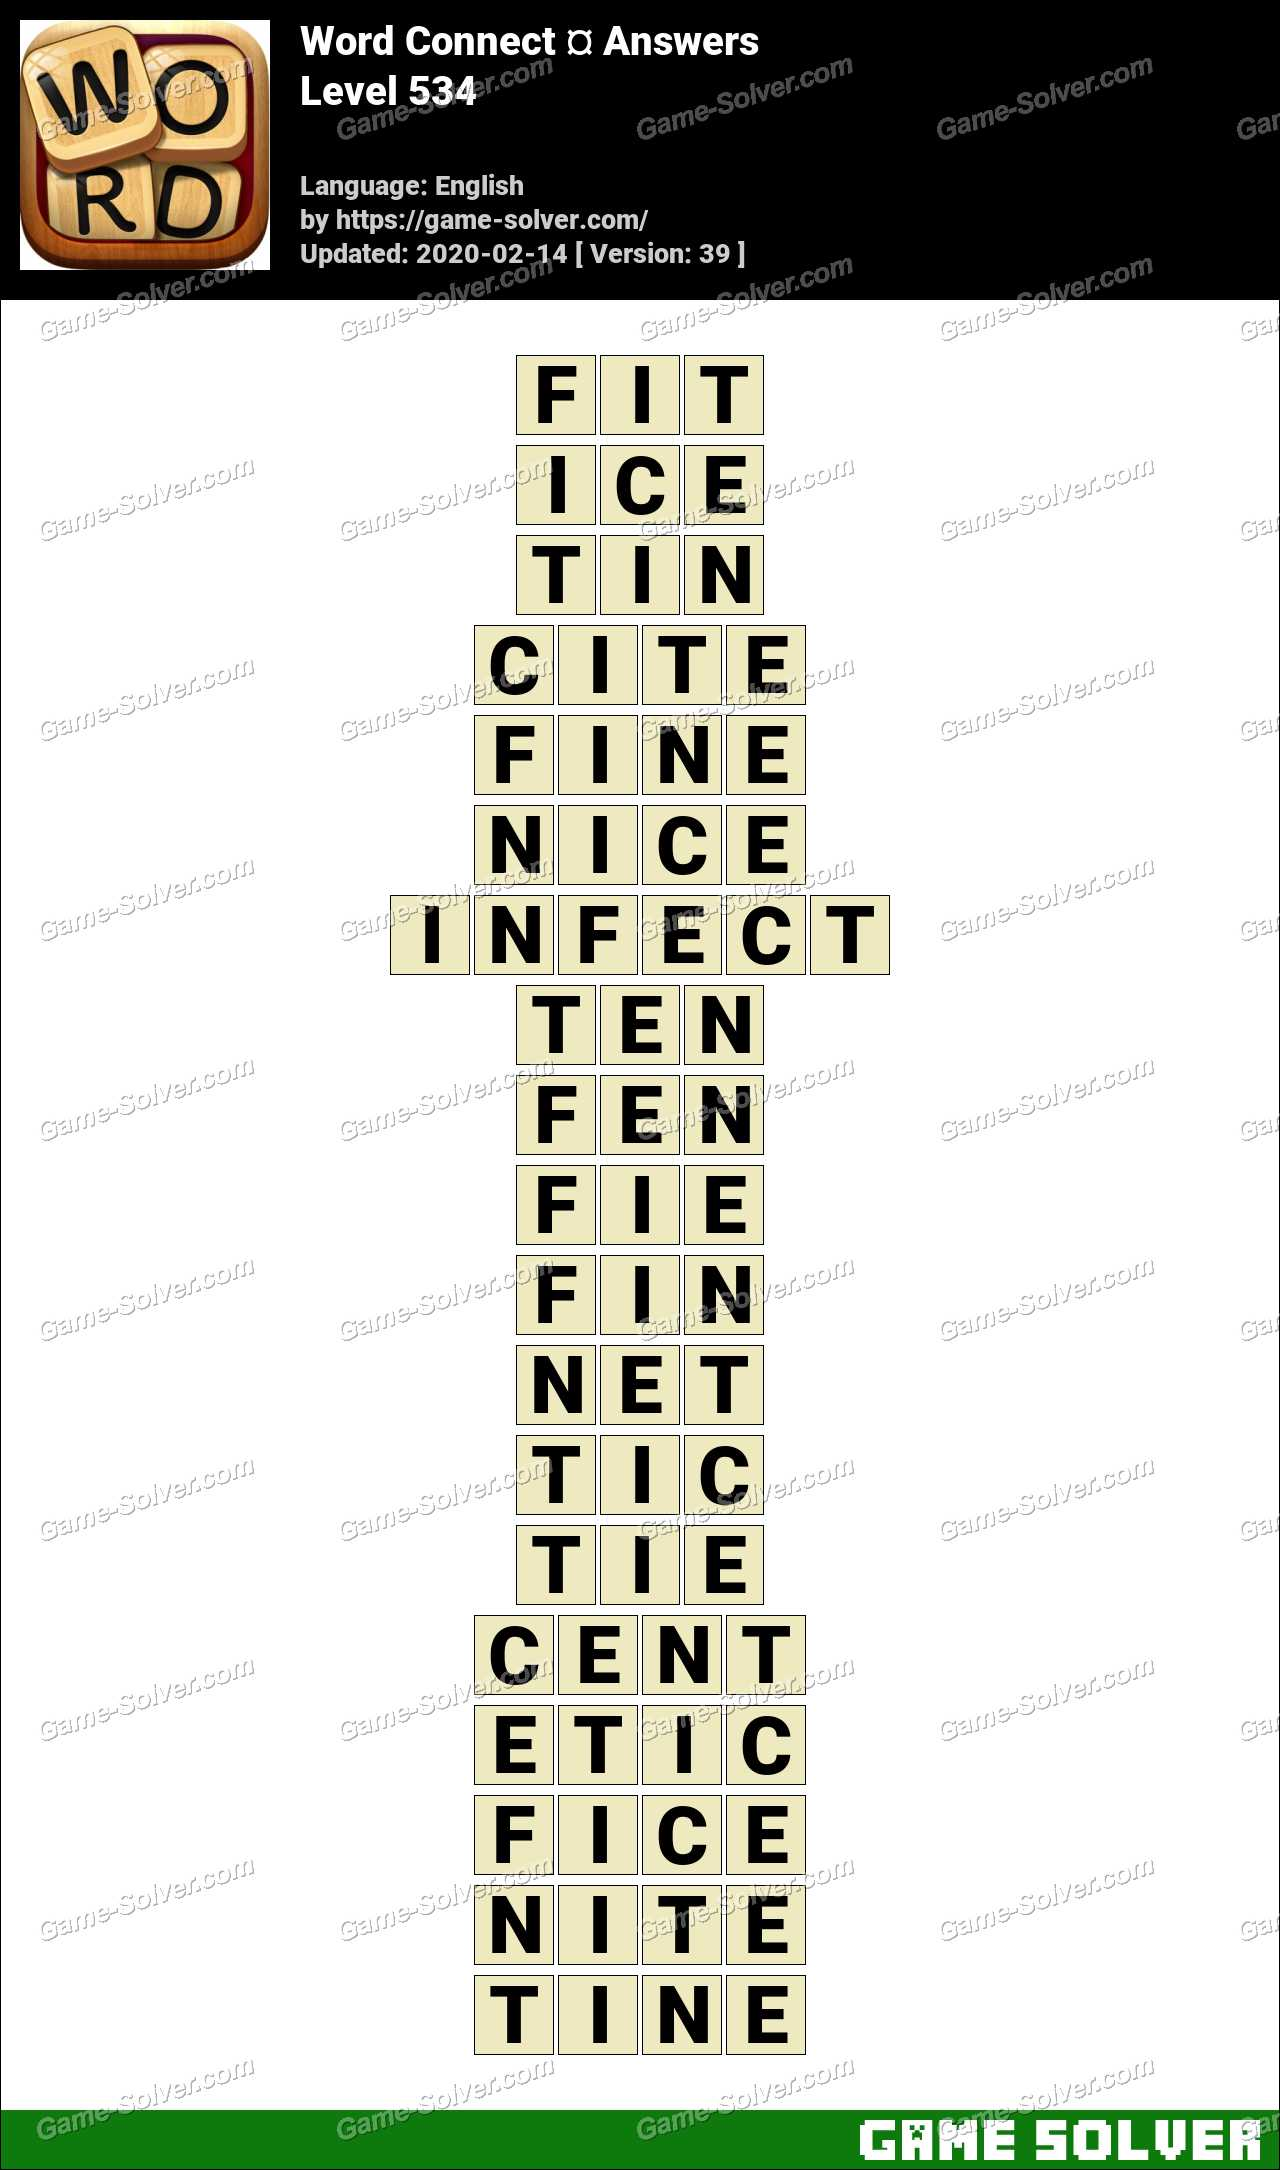 Word Connect Level 534 Answers